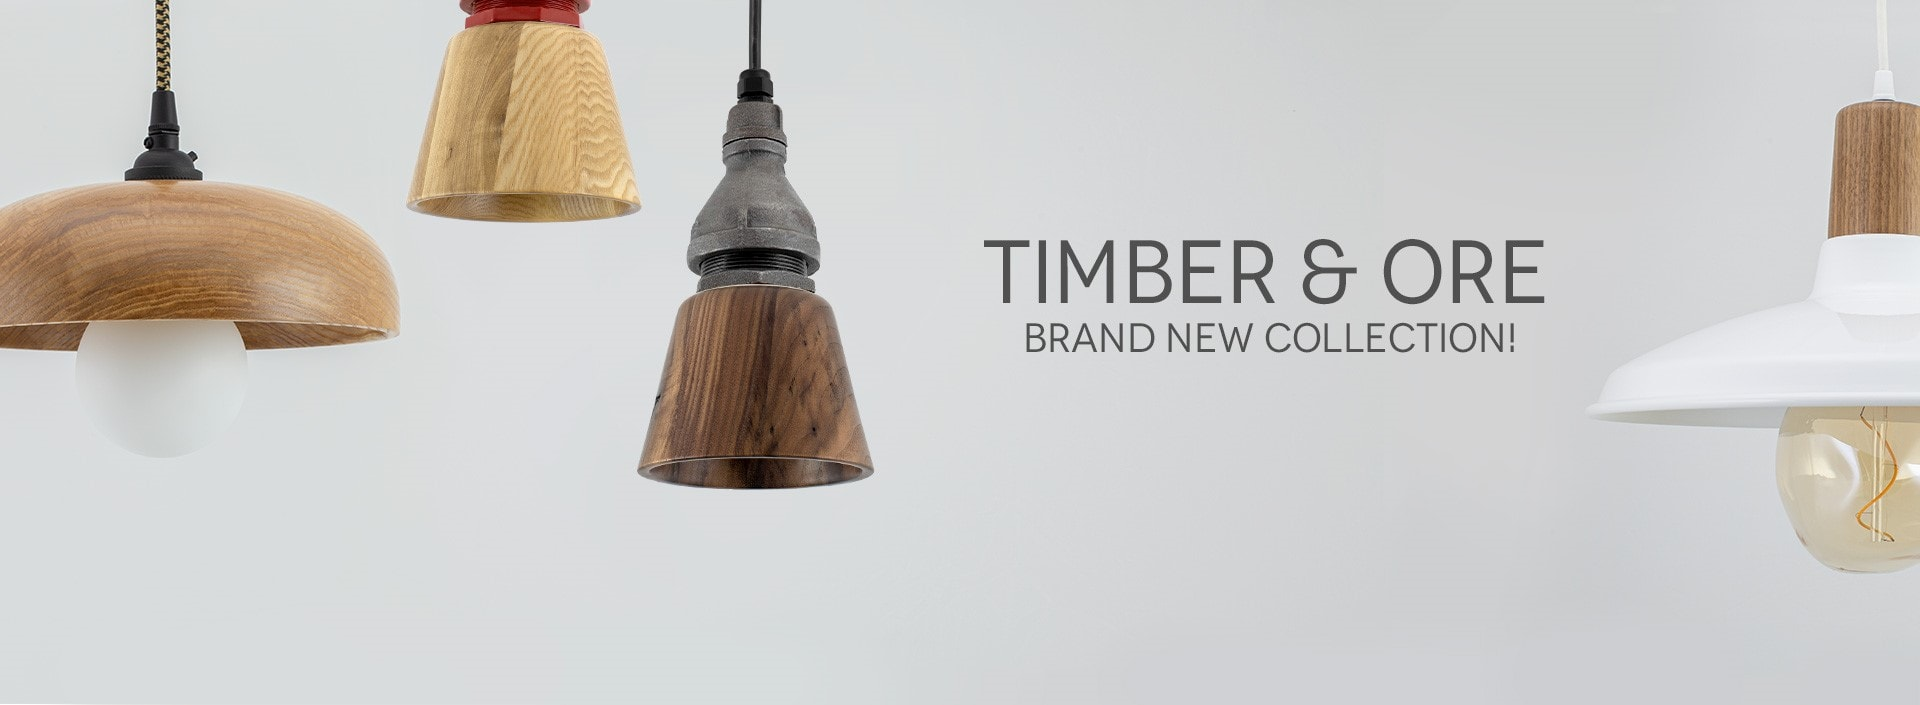 Timber and Ore Ceiling Pendant Light